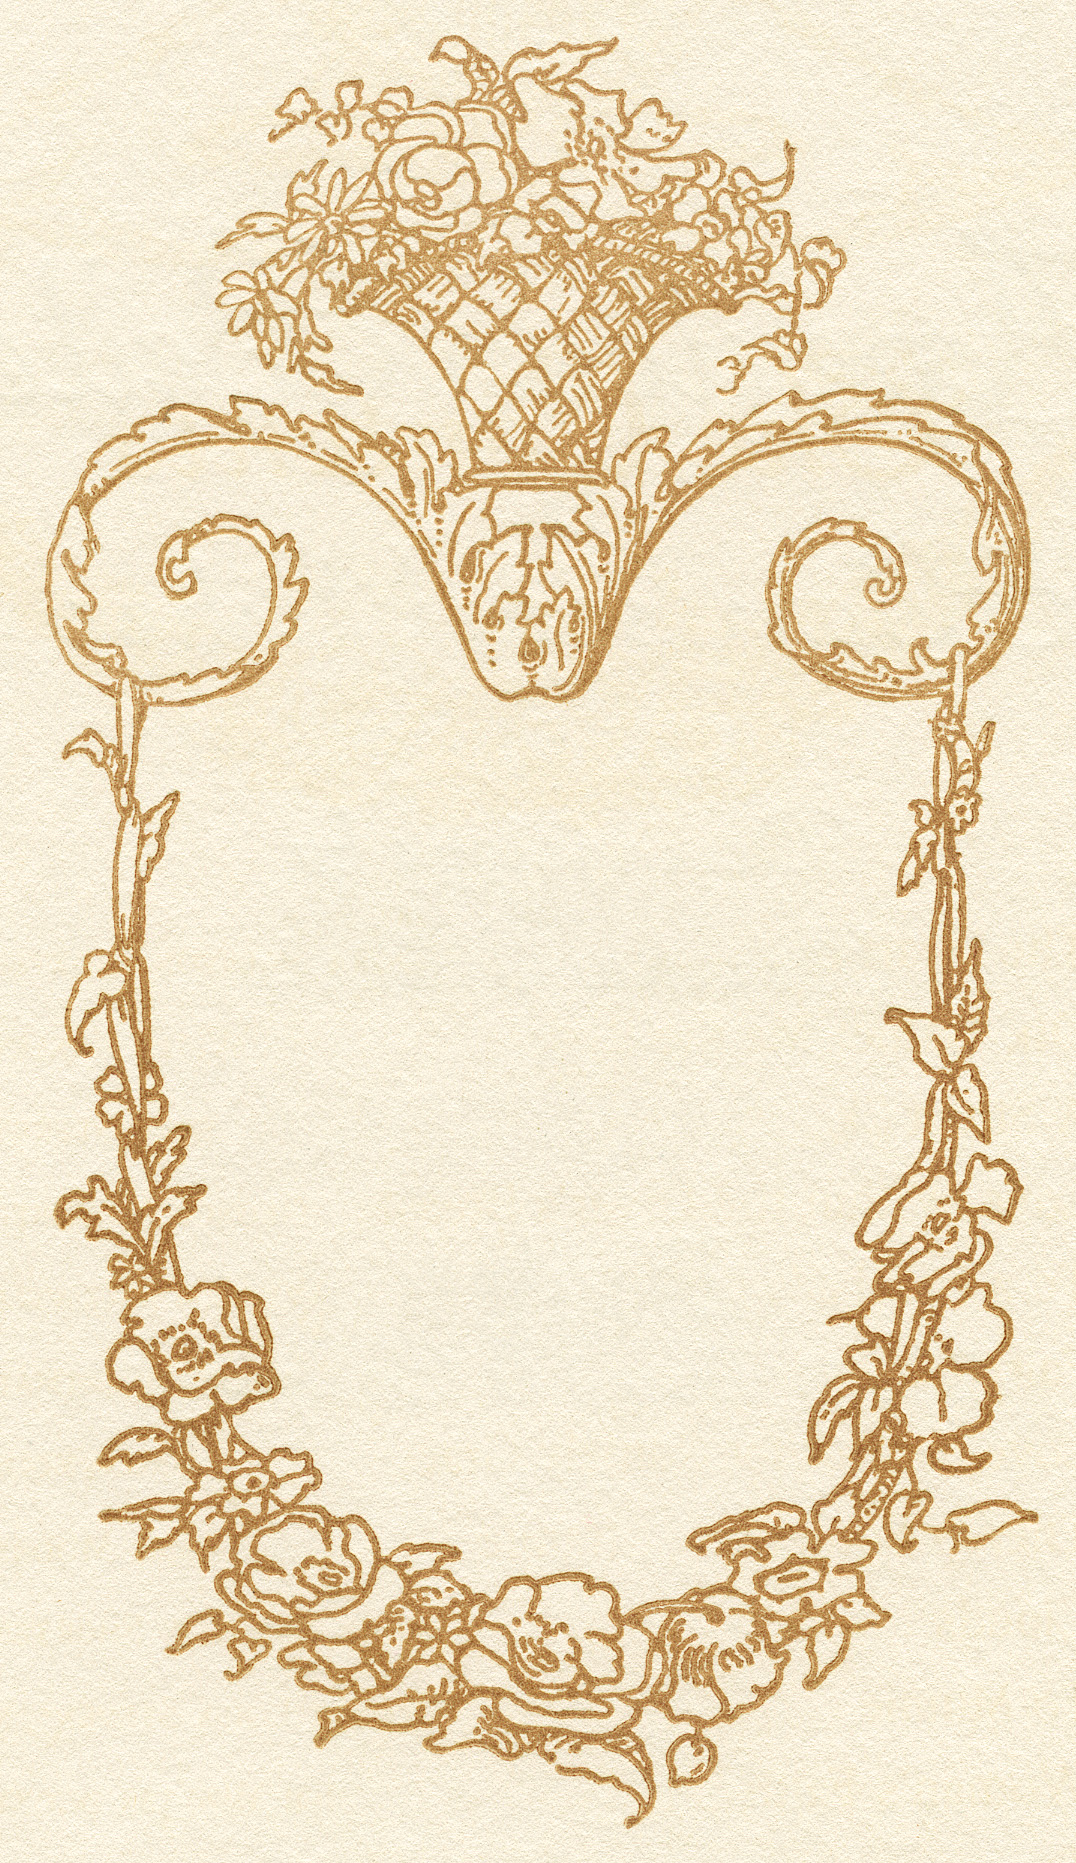 free vintage image, free victorian swirl, harrison fisher american belles 1911, pretty vintage ornamental sketch, free printable digital download, public domain digital image, free victorian clipart, graphic design resource, vintage ornamental illustration drawing